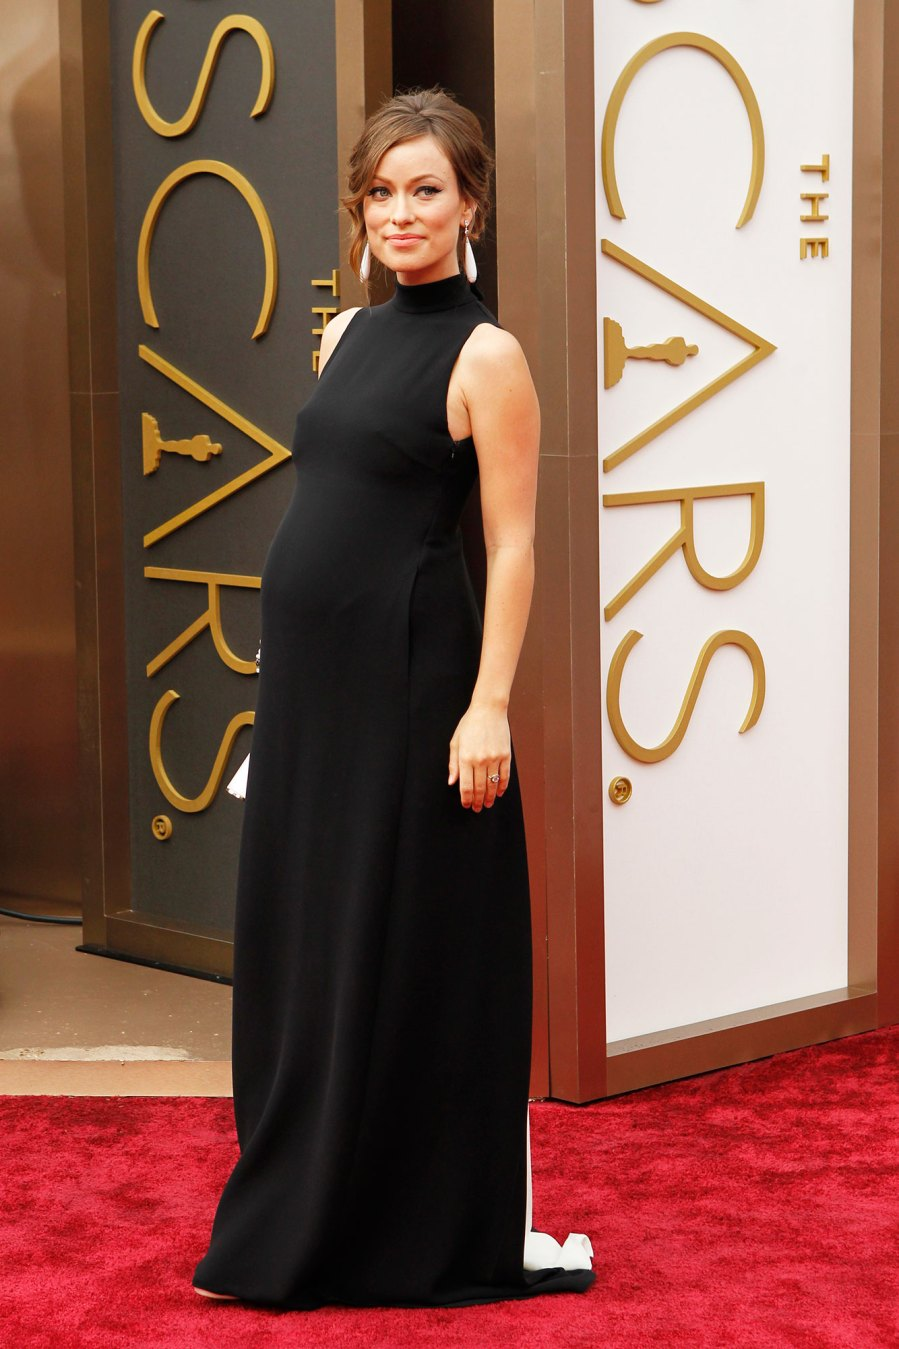 Olivia Wilde Pregnant Celebrities Showing Off Their Baby Bumps on the Oscars Red Carpet